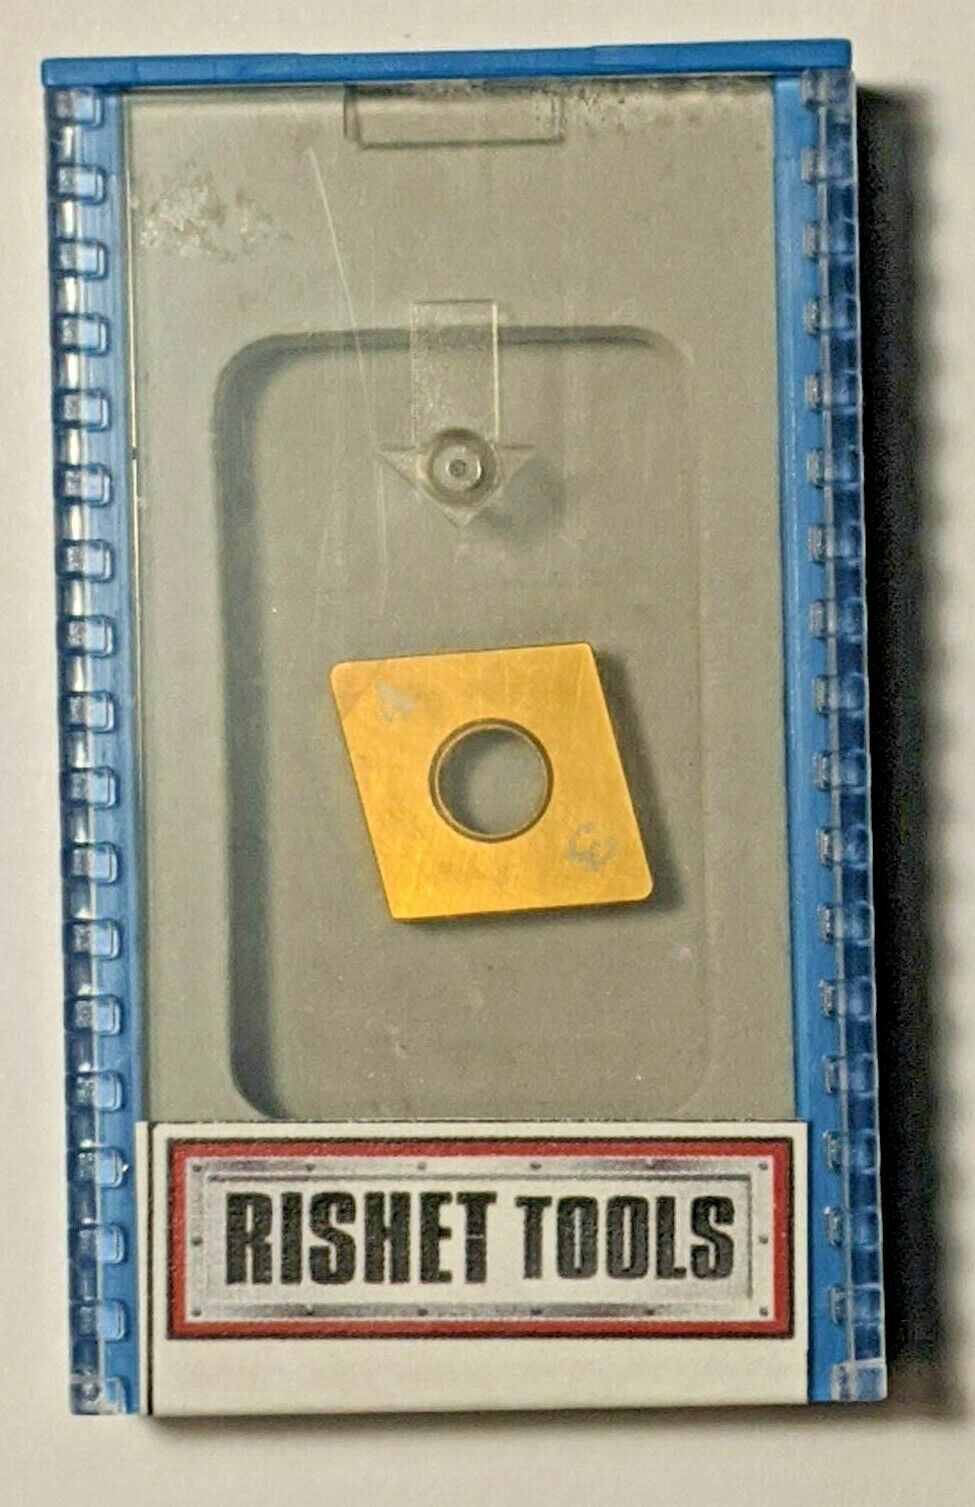 RISHET TOOLS CNGA 432-4N S0102510 CBN carbide insert Grade PNH3019, Tip Shape CBST30C1, TIN Coated, 4 tips for turning Hardened Steel - Heavy Interrupted cutting